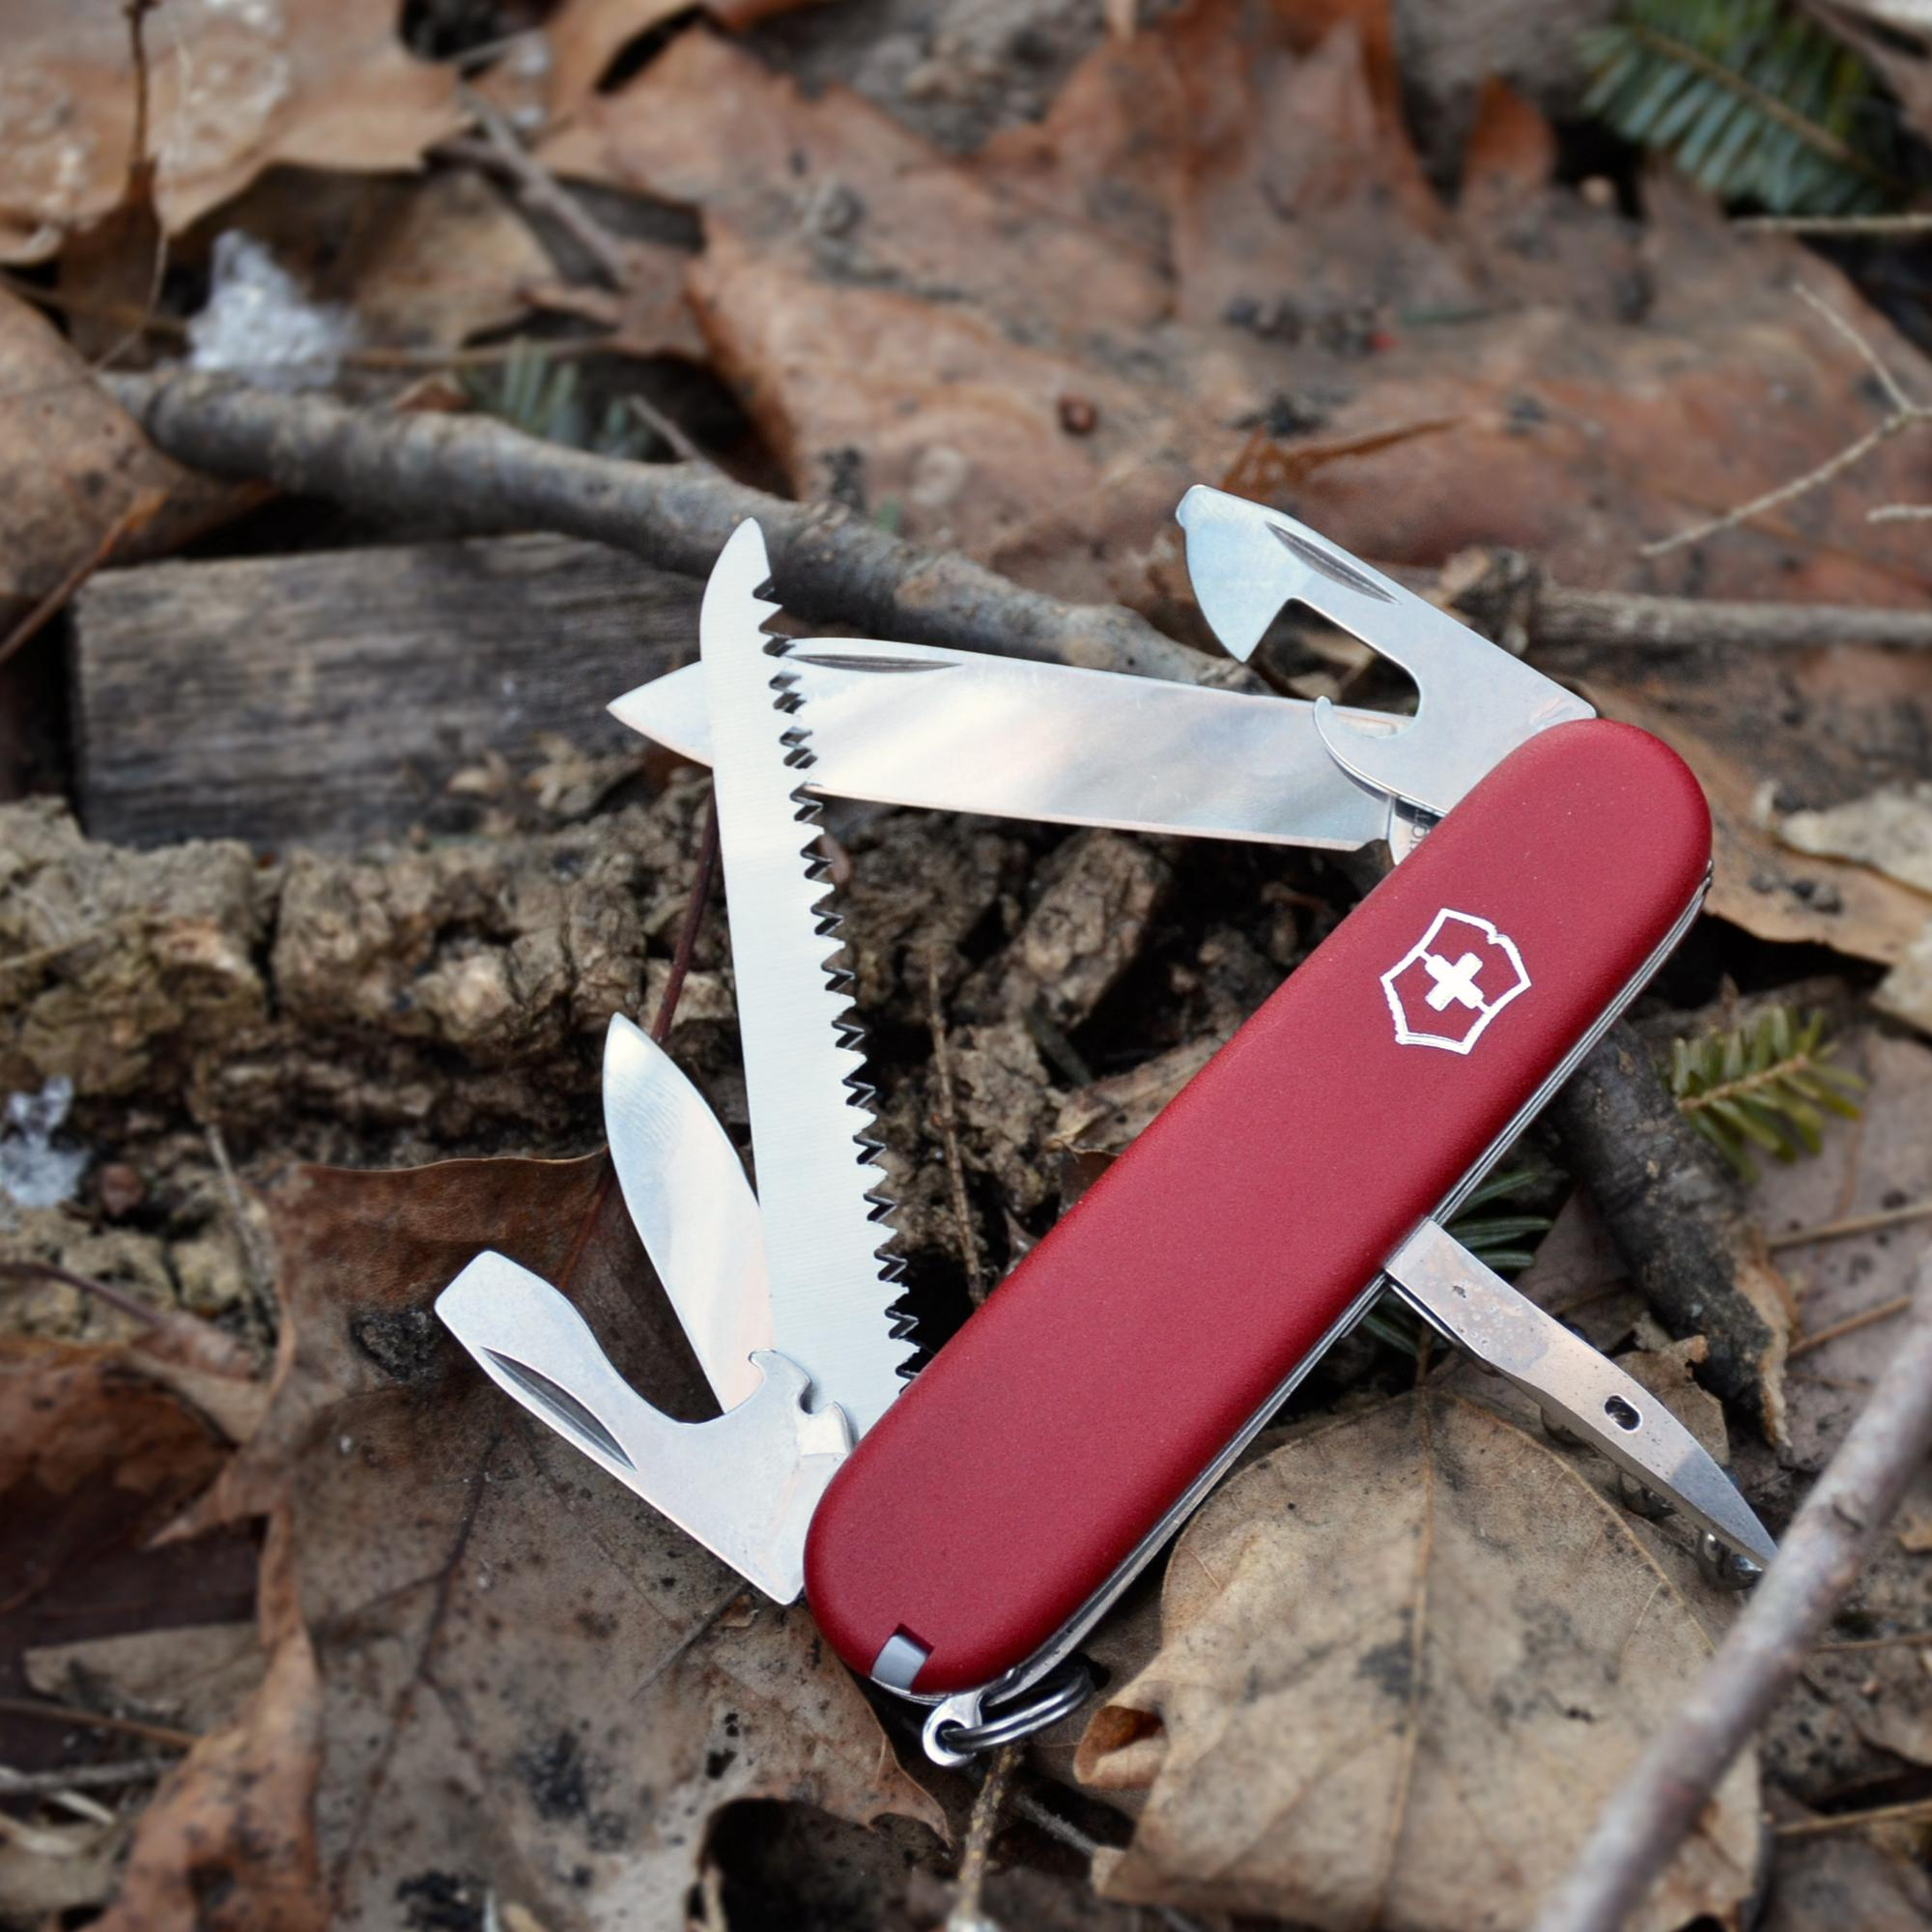 Huntsman Ii 54993 Swiss Army Knife Victorinox Swiss